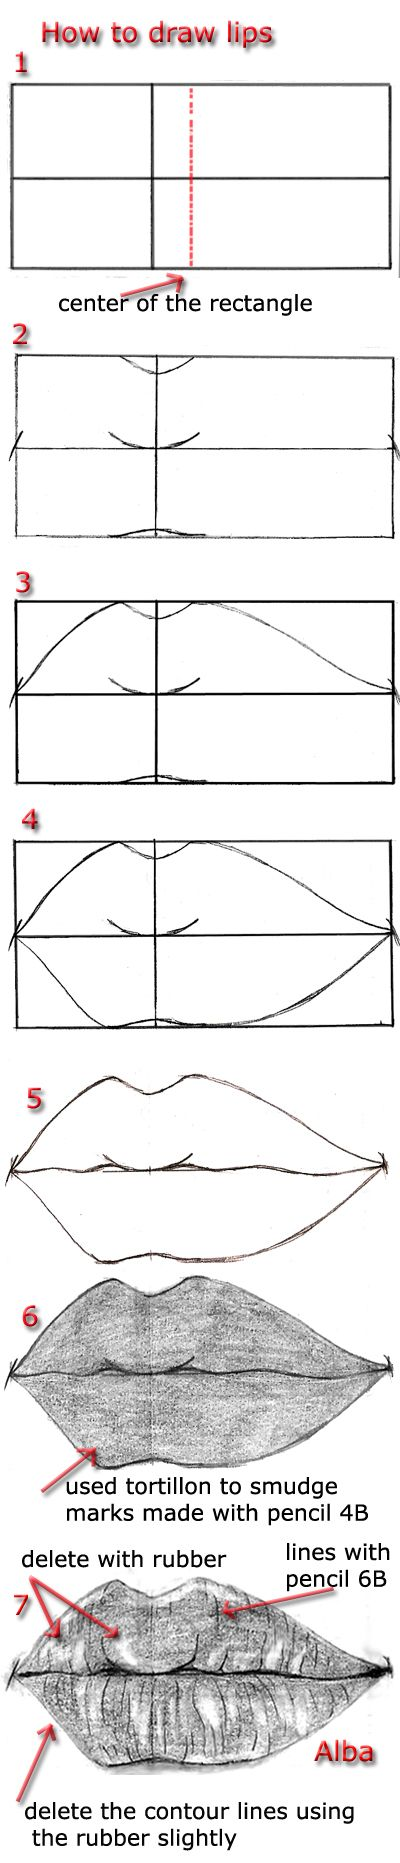 Tutorial draw lips - http://lamorghana.deviantart.com/art/Tutorial-draw-lips-3-271582368